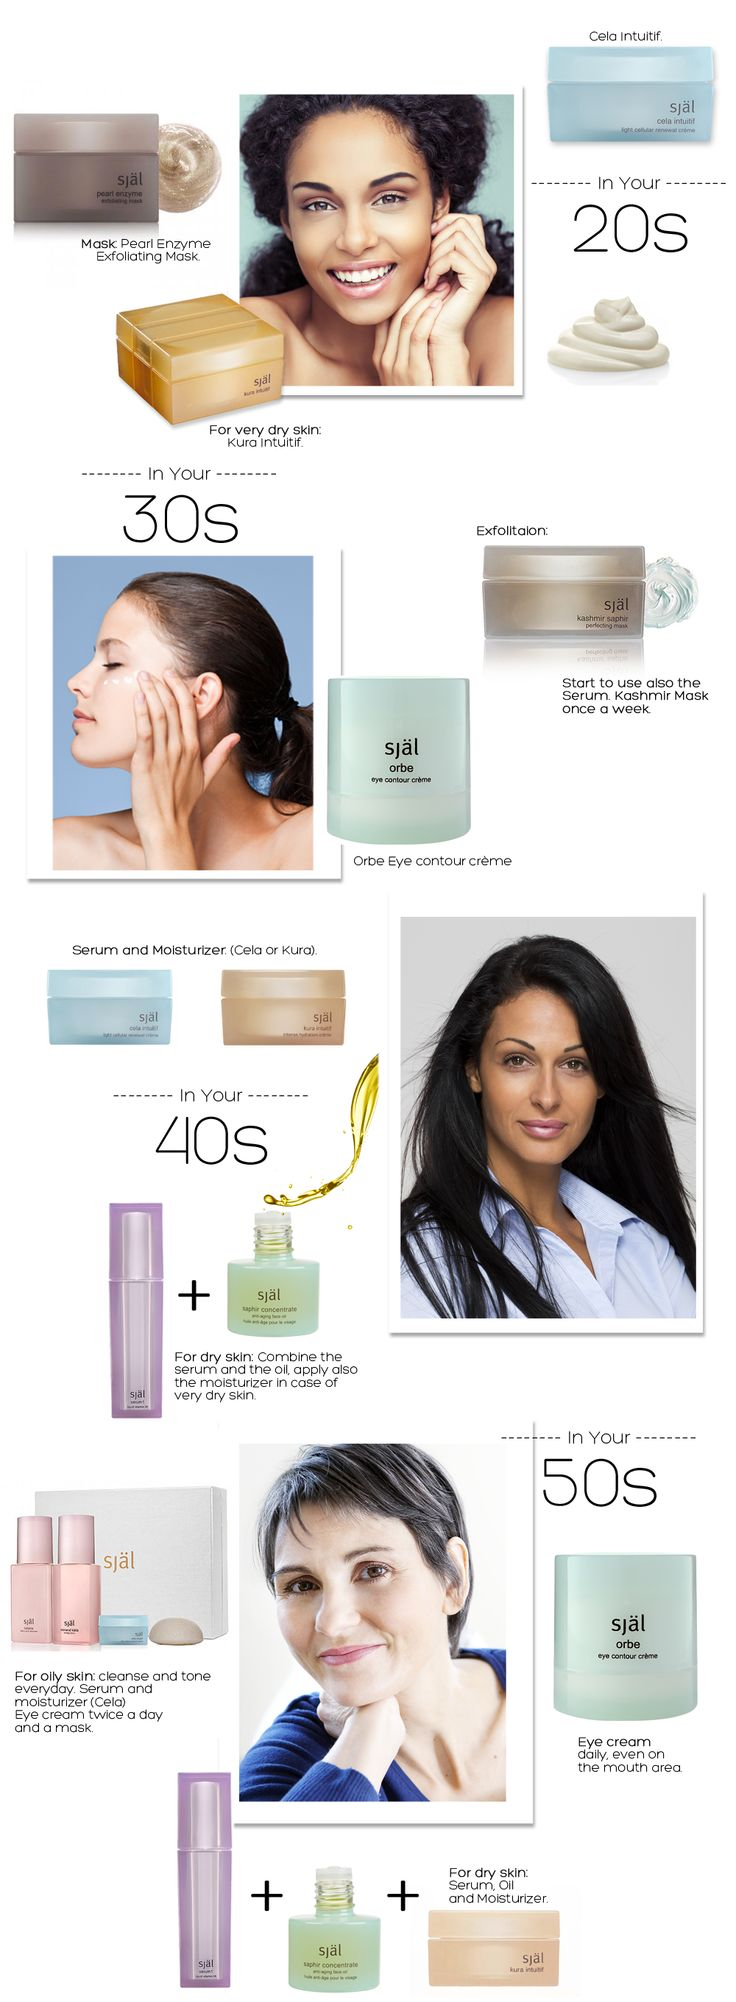 SJAL AT EVERY AGE. Skin tips for your 20s, 30s, 40s and 50s from #KristinPetrovich #sjalskincare Co-Founder.